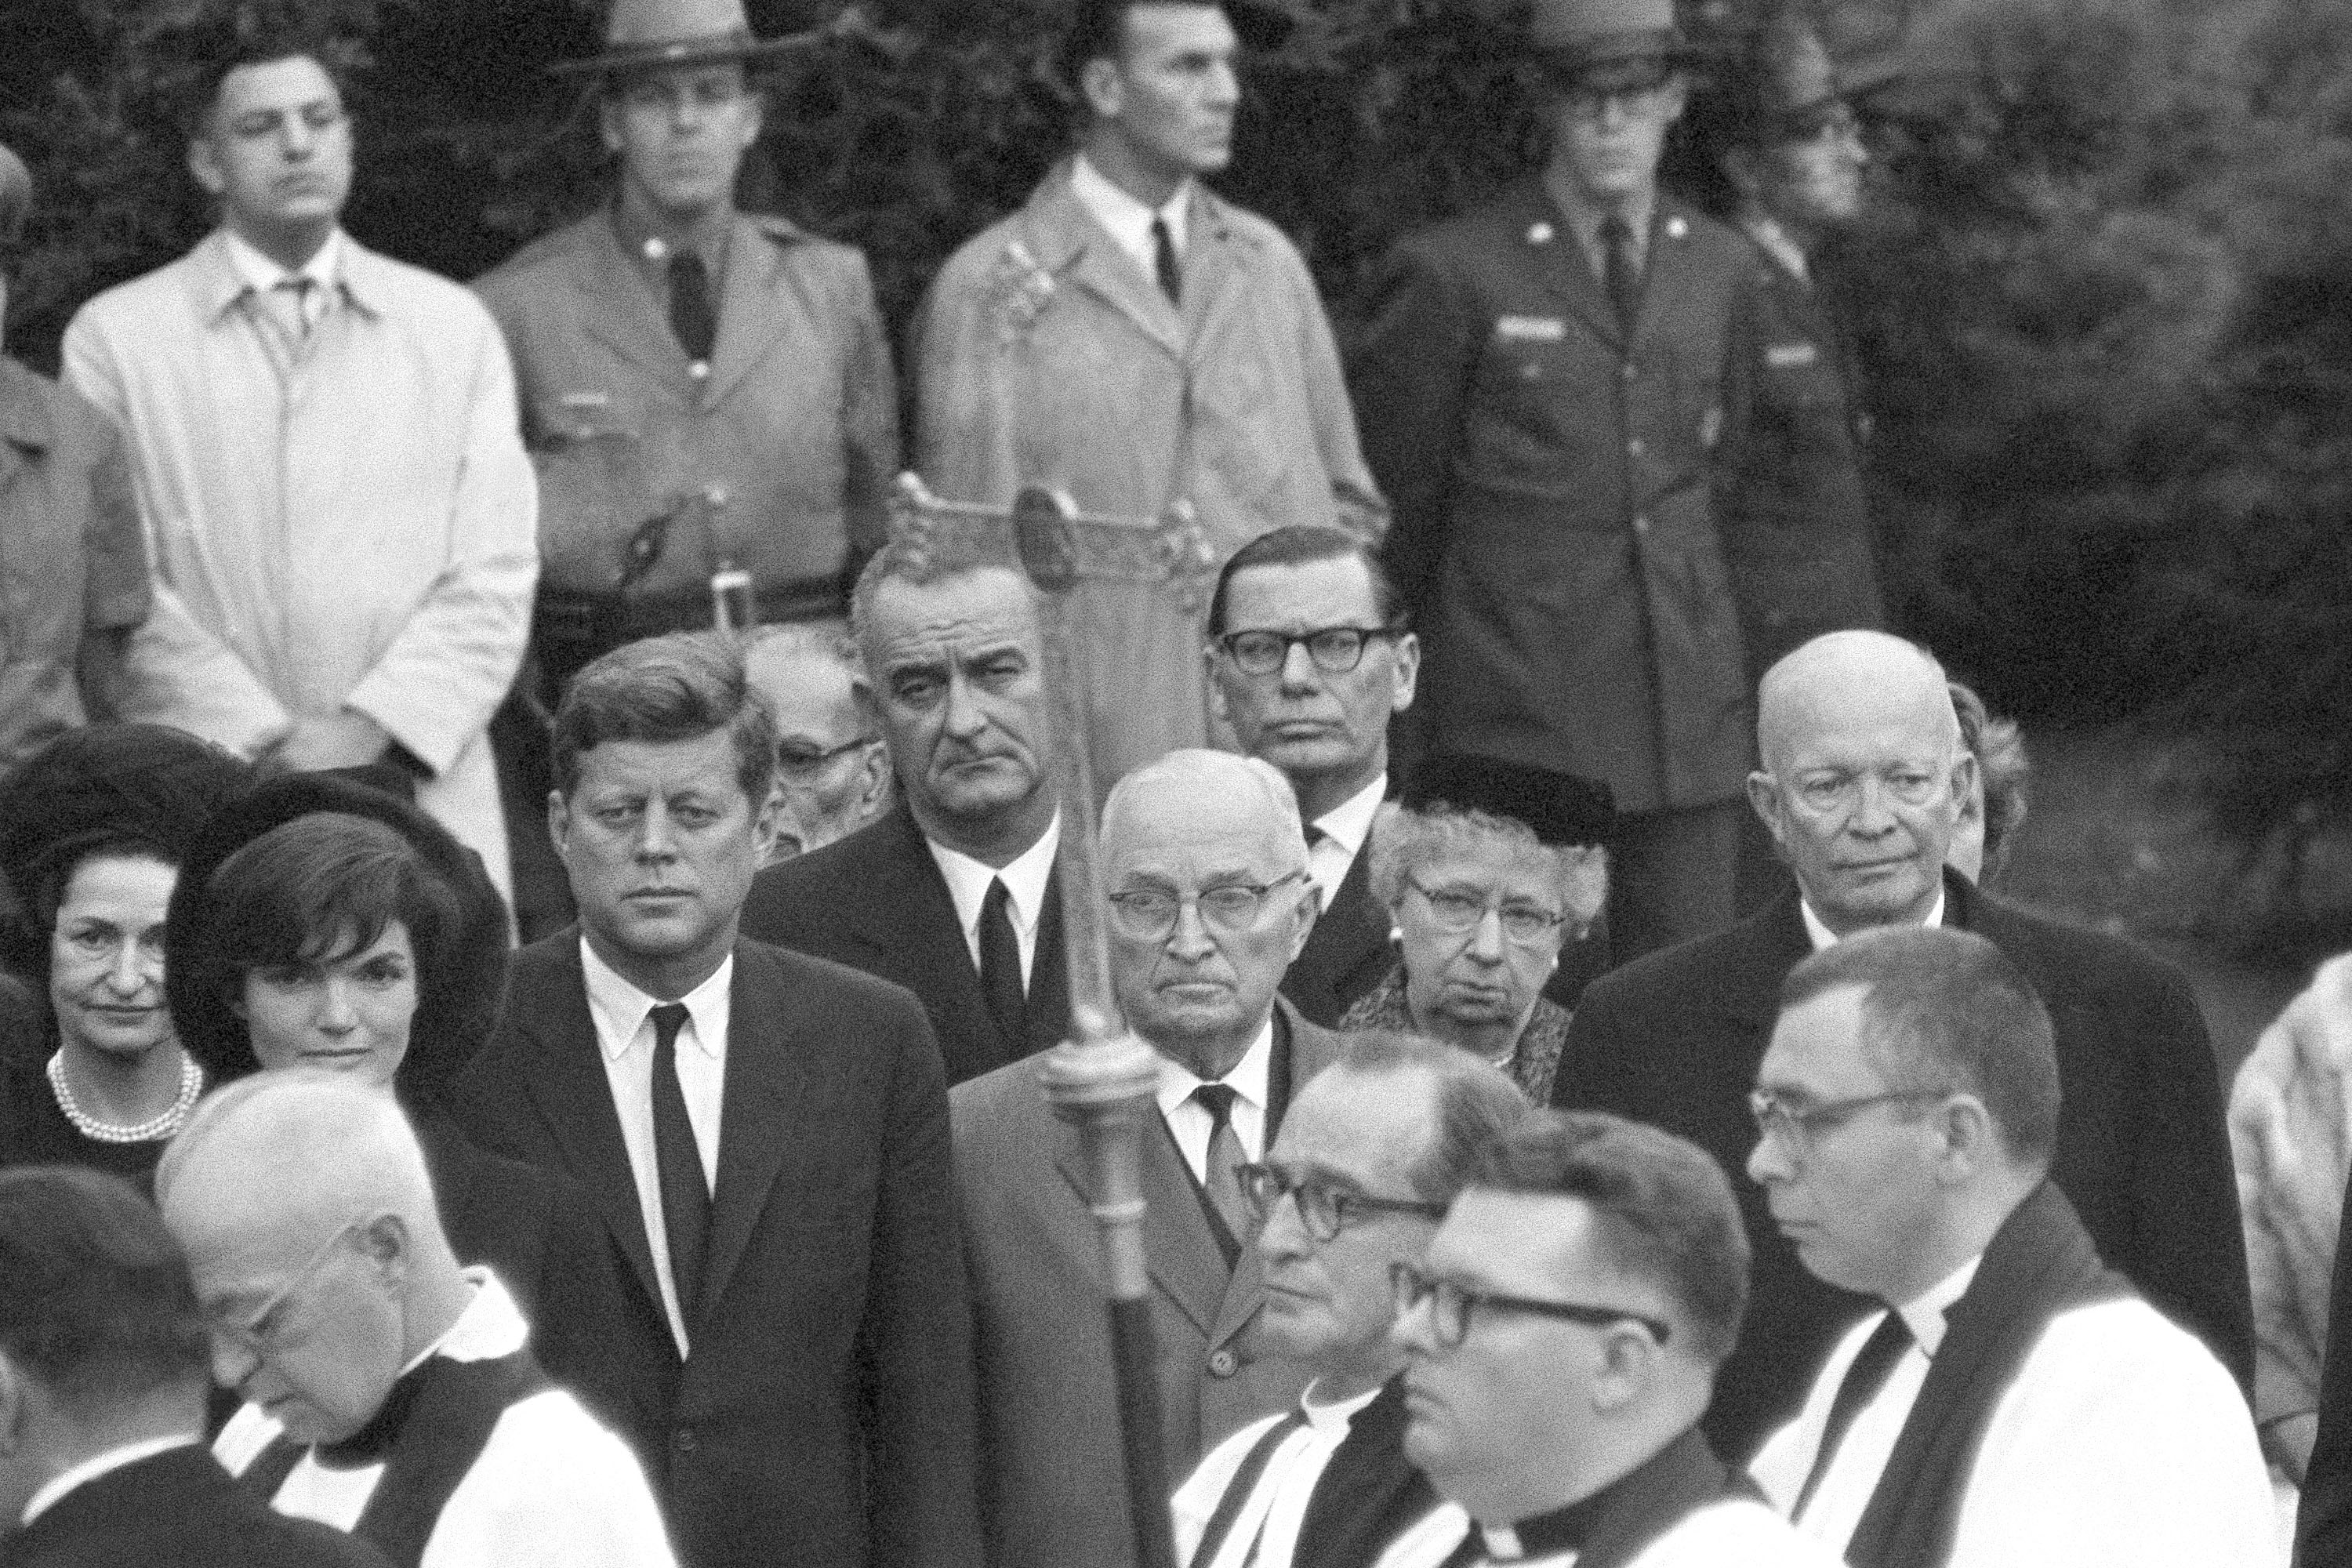 President John F. Kennedy is joined by two former presidents during services at the grave of former first lady Eleanor Roosevelt in the rose garden of the Roosevelt estate at Hyde Park, N.Y., on Nov. 10, 1962.